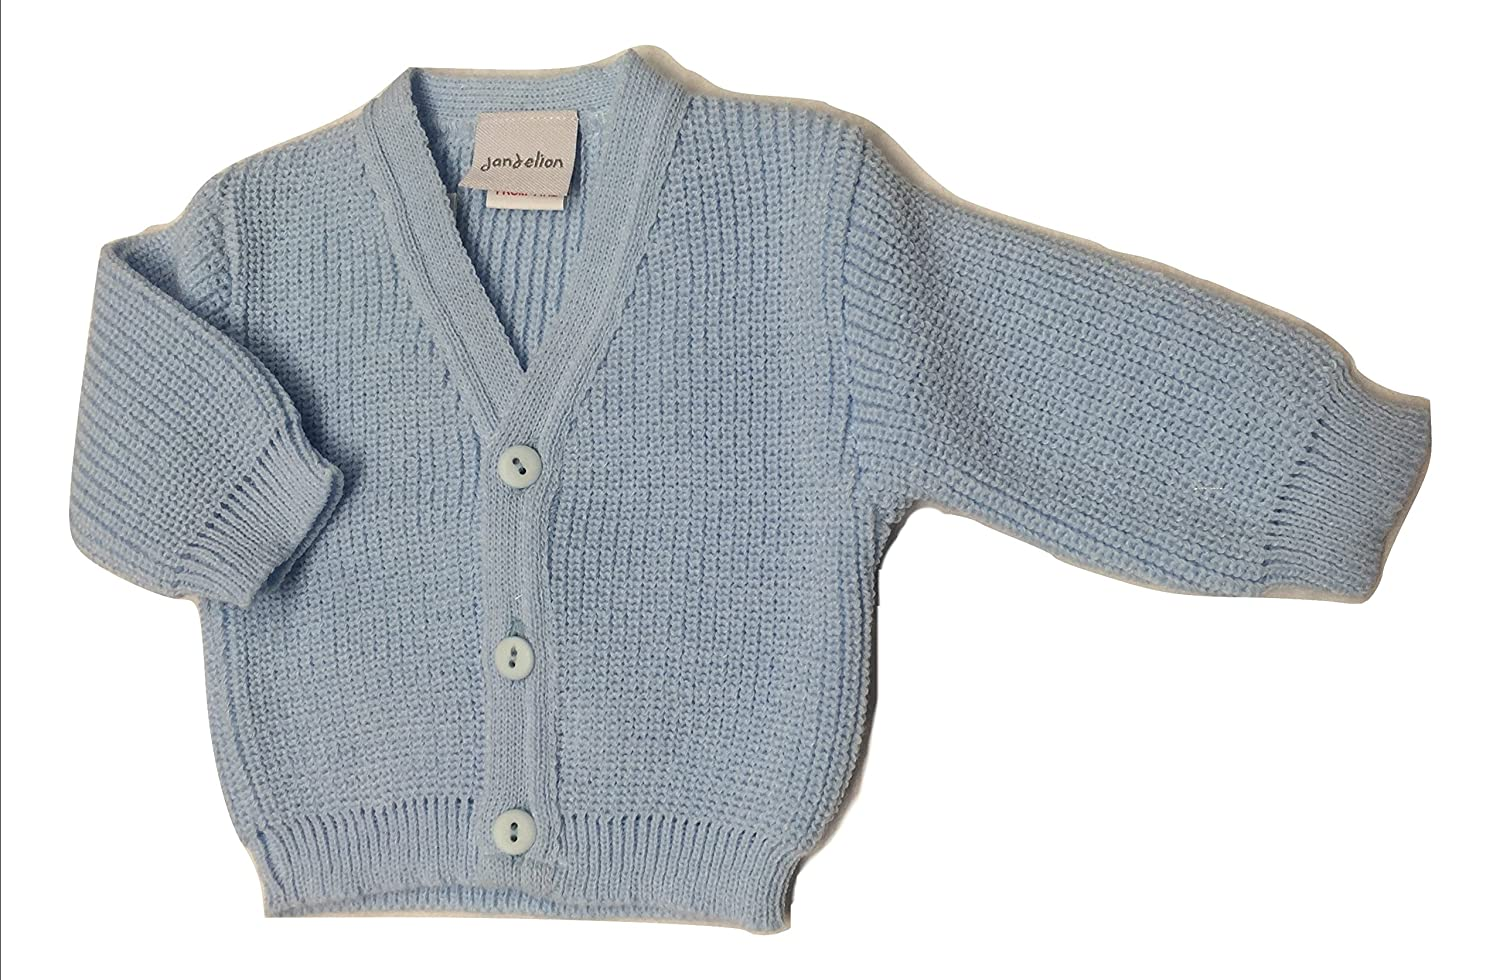 Dandelion Premature Early Baby Clothes - Ribbed Cardigan 2-8 Lbs